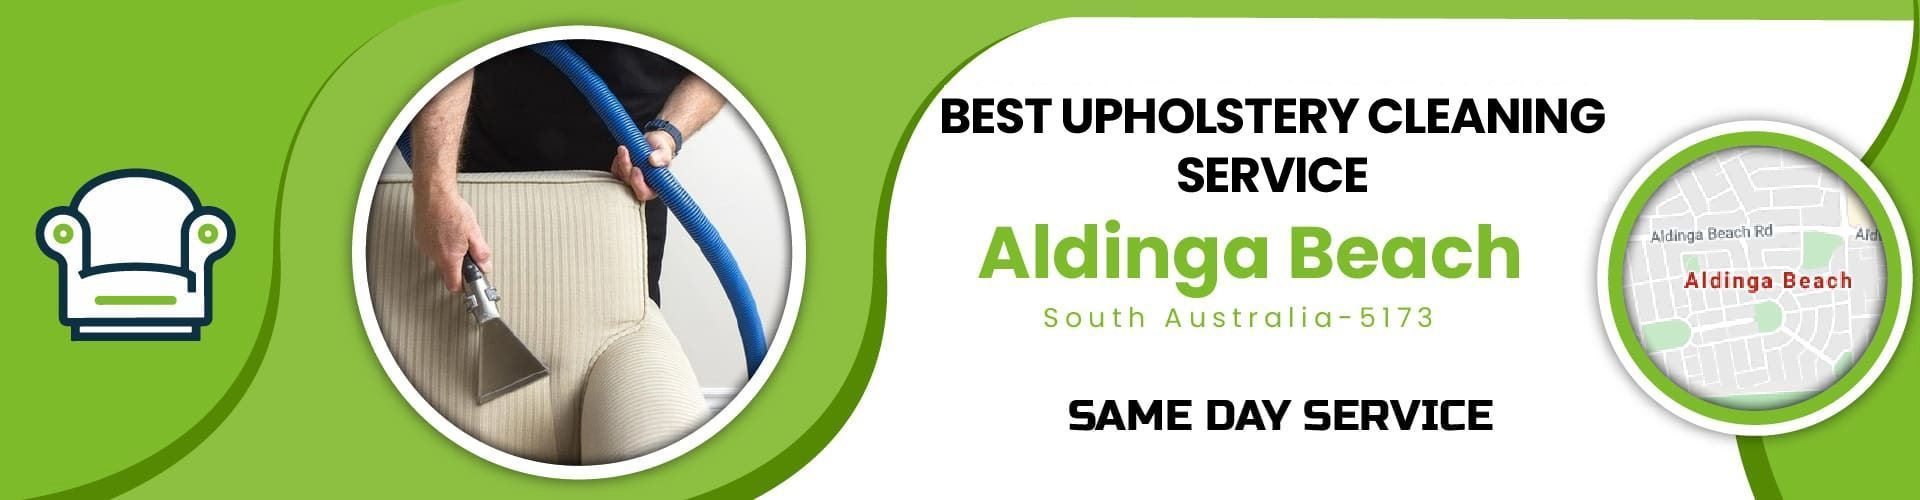 Upholstery Cleaning Aldinga Beach